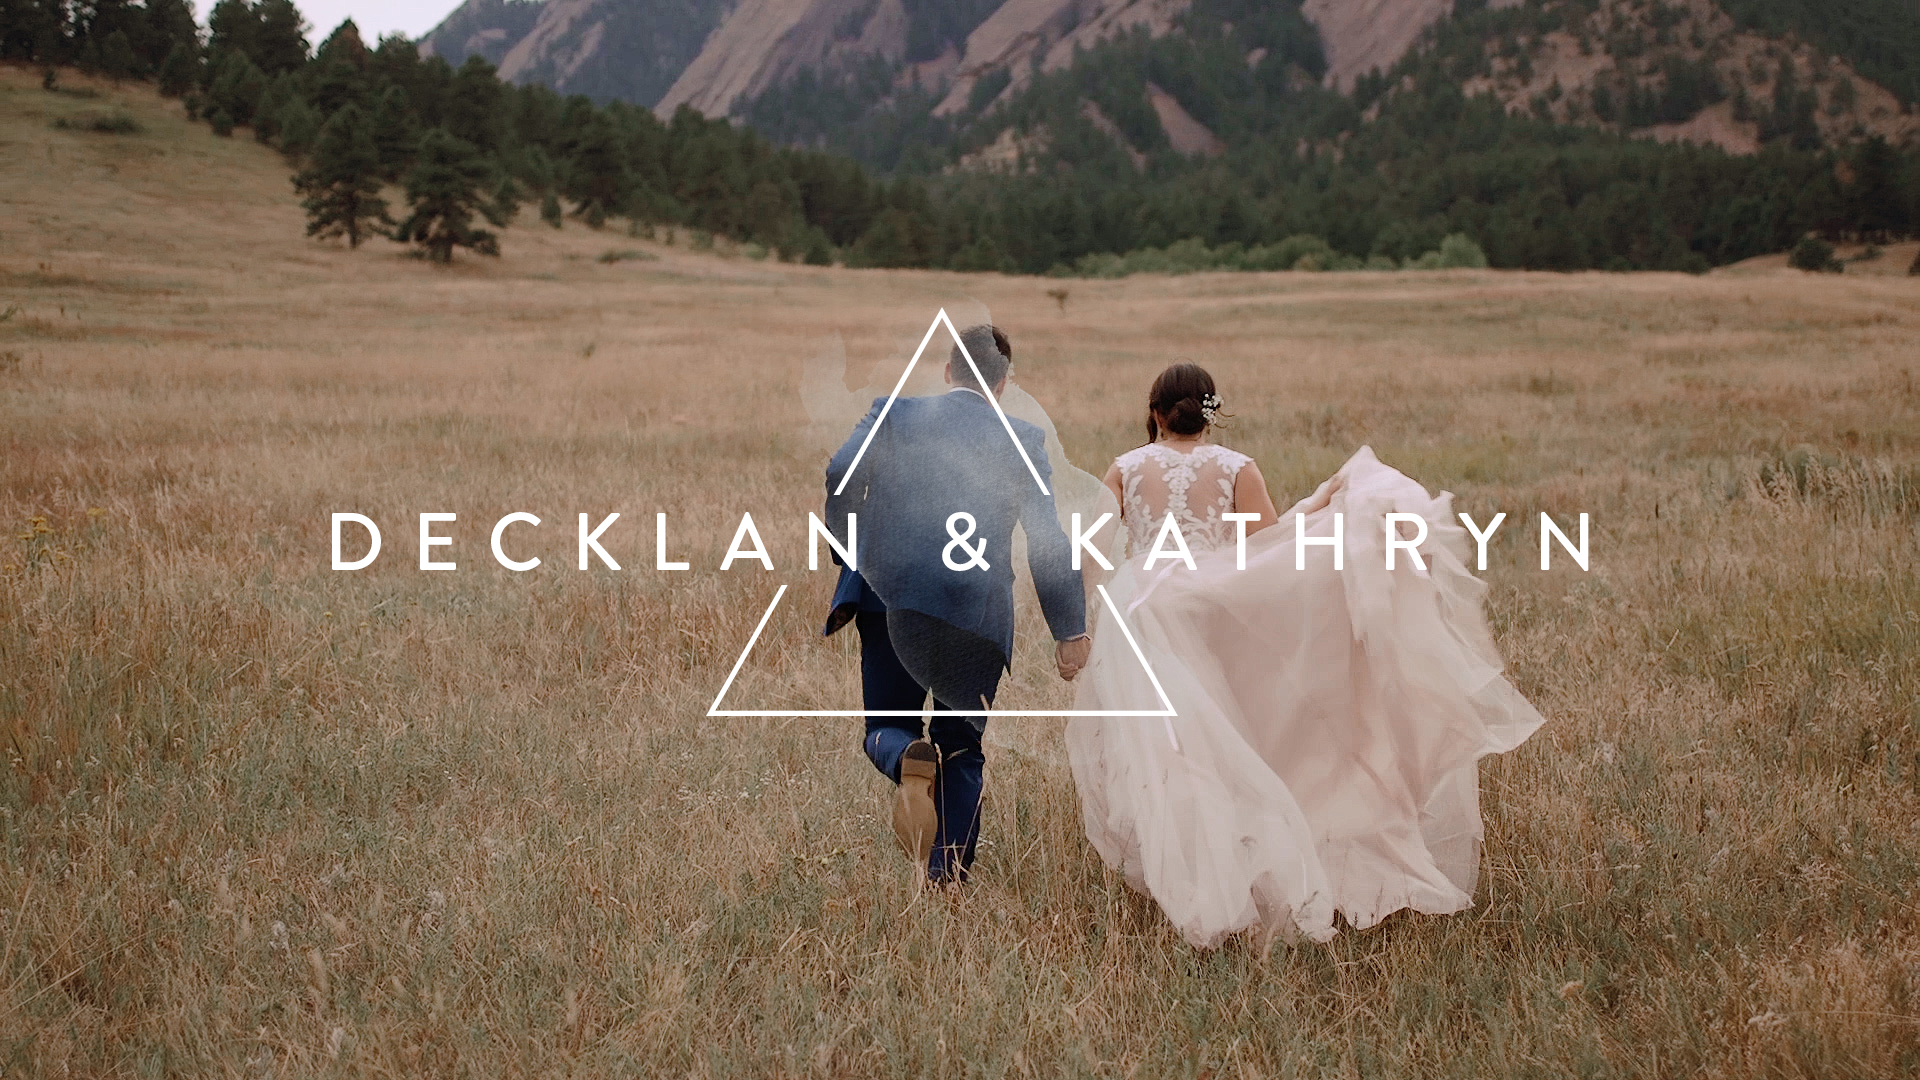 Decklan + Kathryn | Boulder, Colorado | The Studio, Boulder